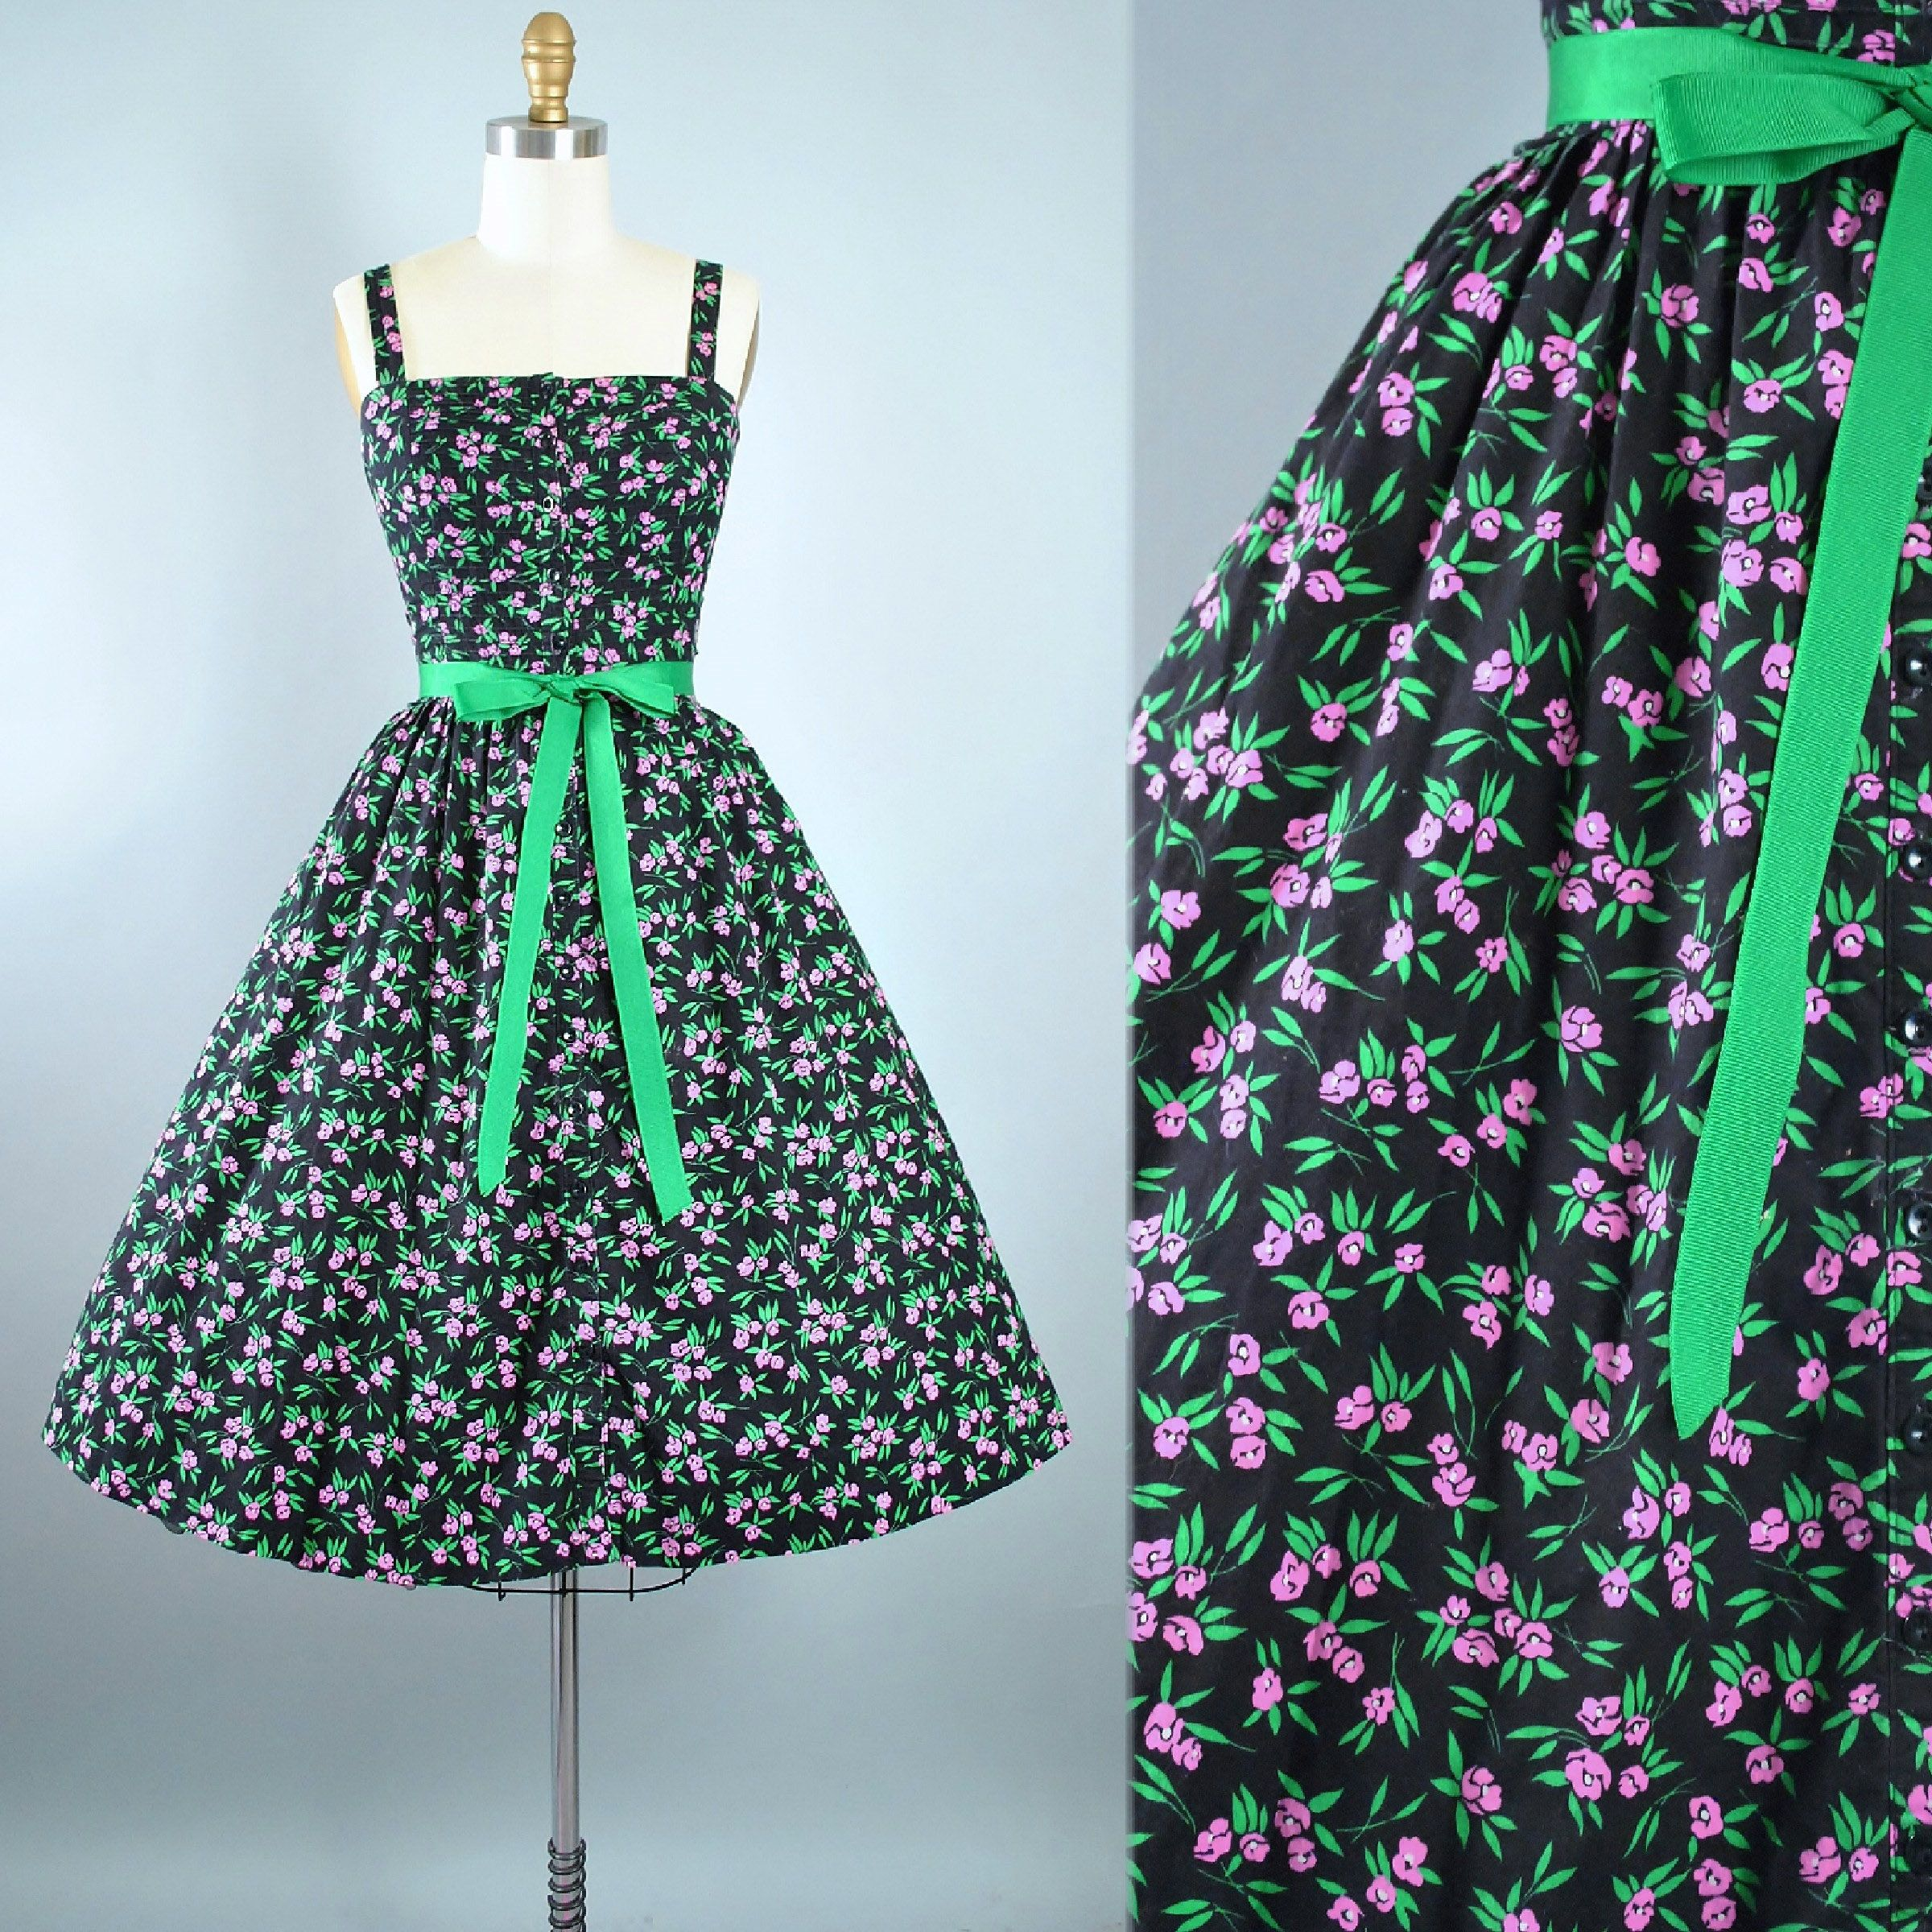 eba908b1f5e Vintage 60s 70s LANZ Dress   1950s Style Black Cotton Belted Sundress  Floral Pink Green Print Full Skirt Garden Picnic Party Pinup Small by  GeronimoVintage ...